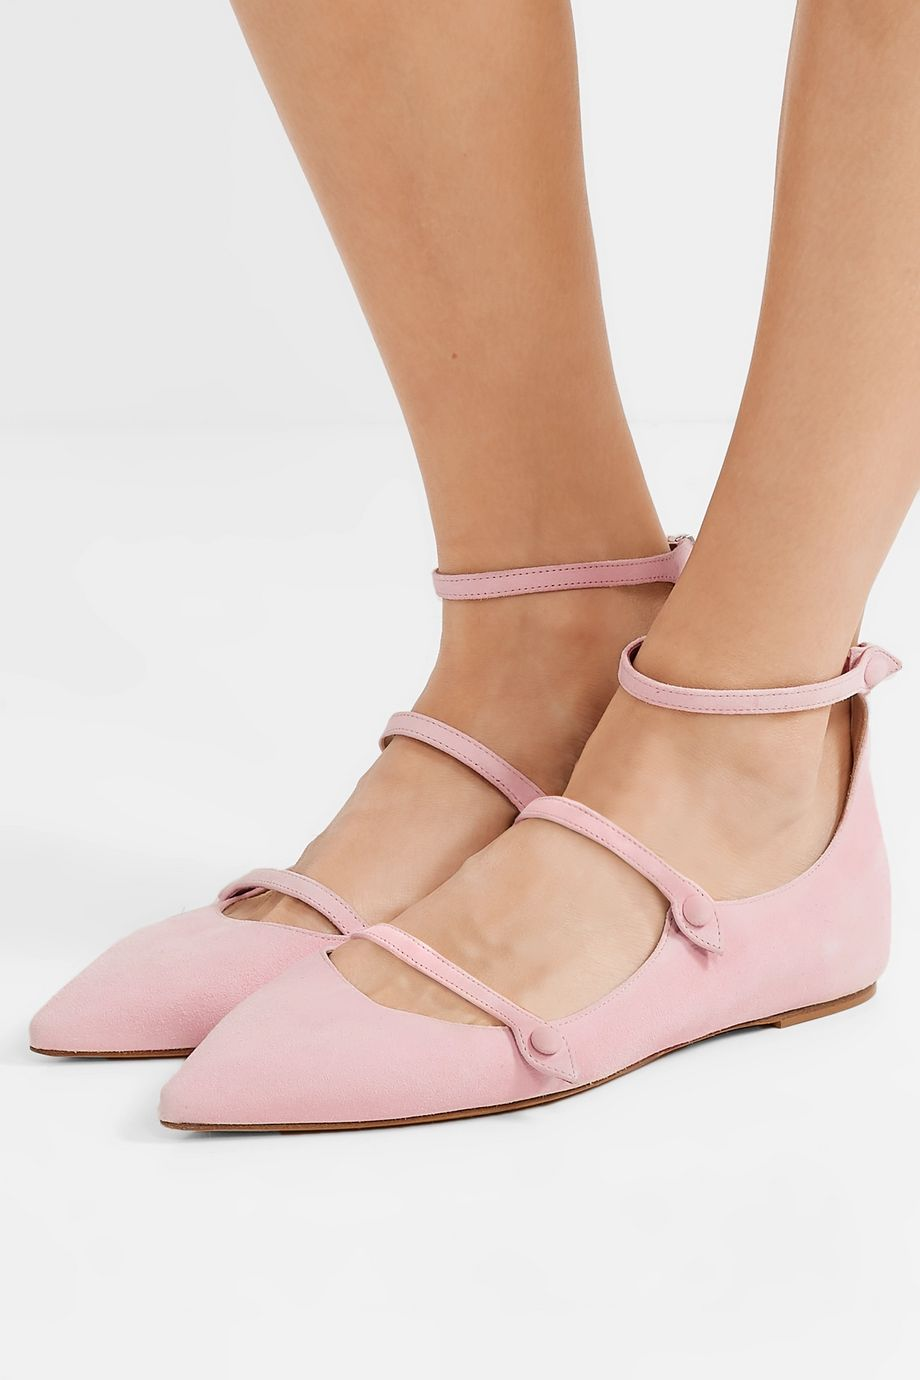 Tabitha Simmons + Equipment Lynette suede point-toe flats